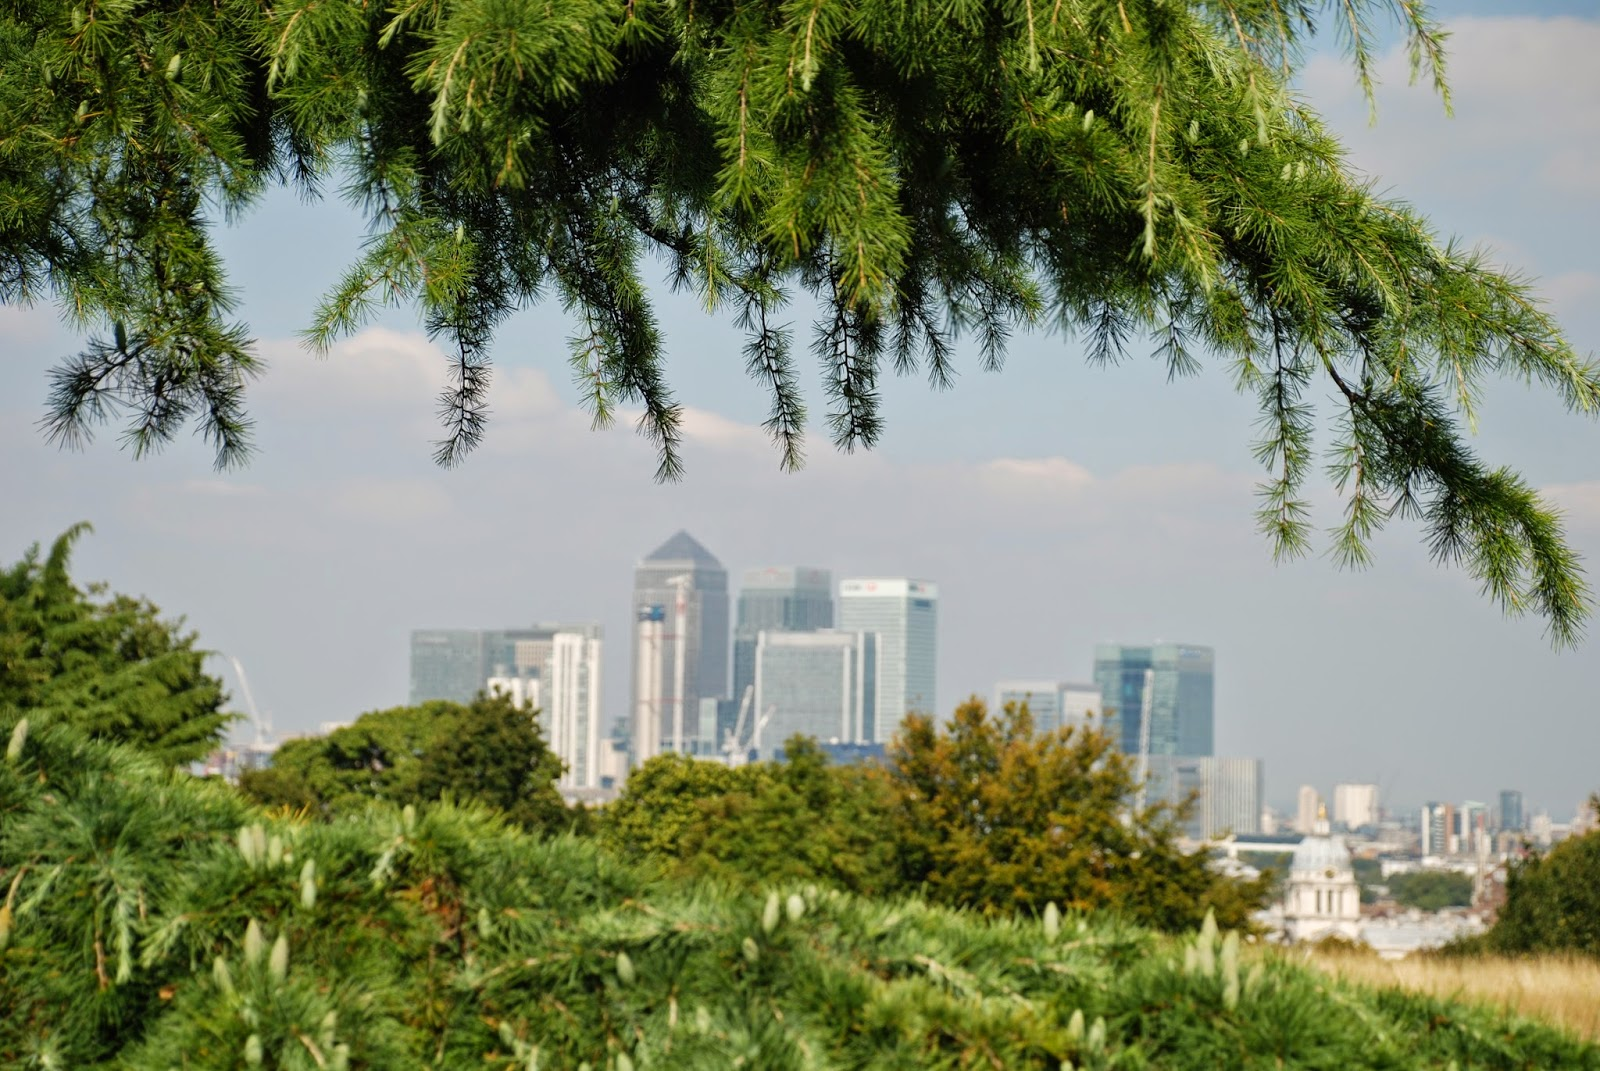 The Docklands and Canary Wharf from Greenwich Park